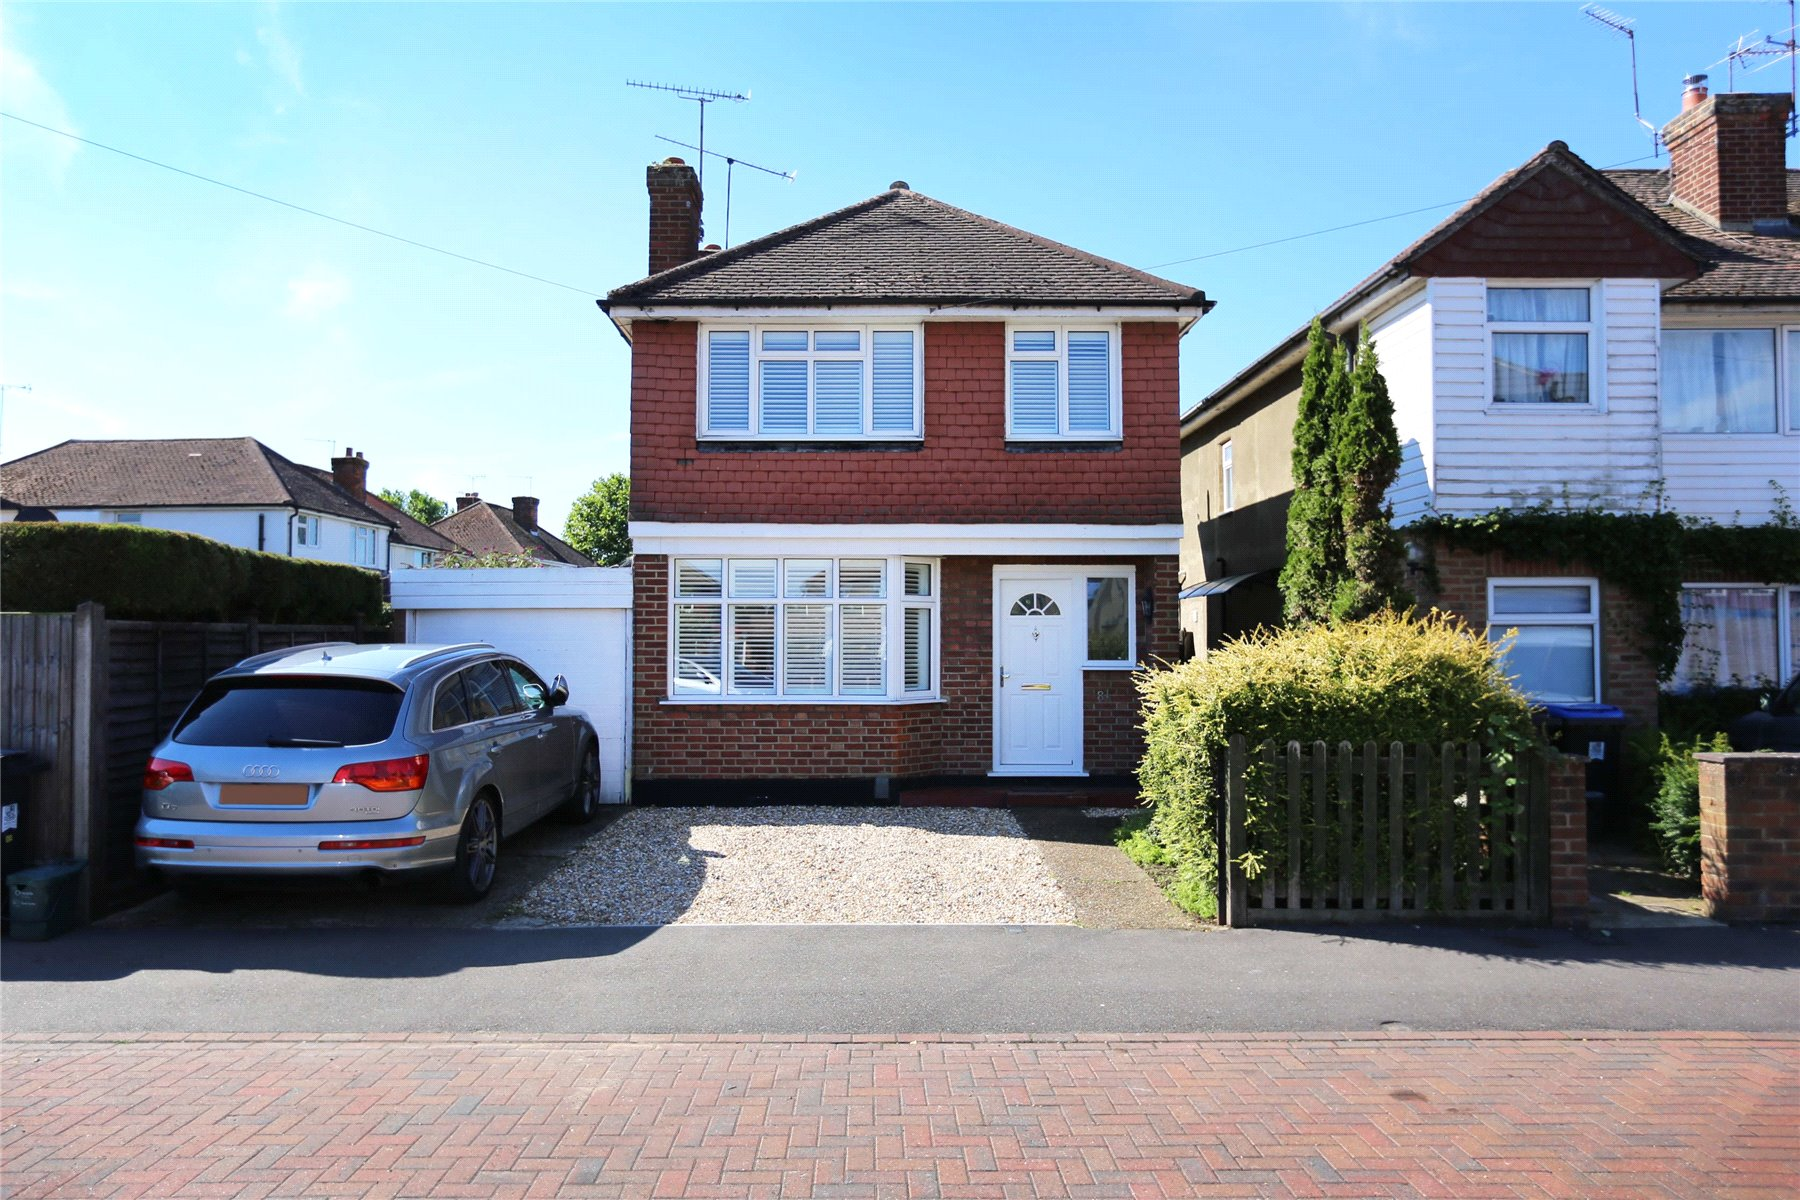 3 Bedrooms Detached House for sale in Rydens Way, Old Woking, Surrey, GU22